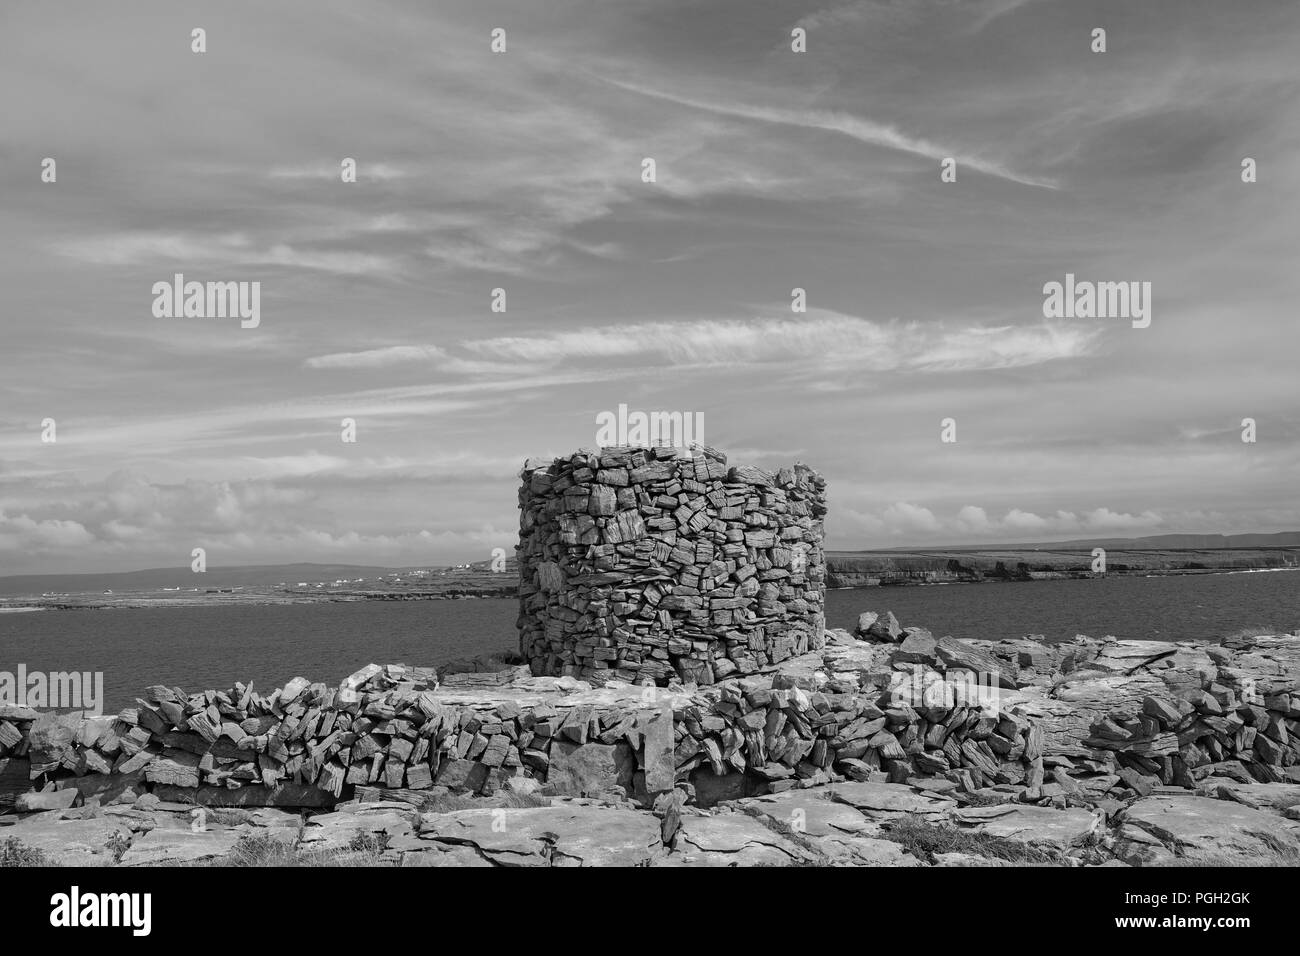 Remains of a round tower on the Eastern shore of Inishmore, Aran Islands. - Stock Image